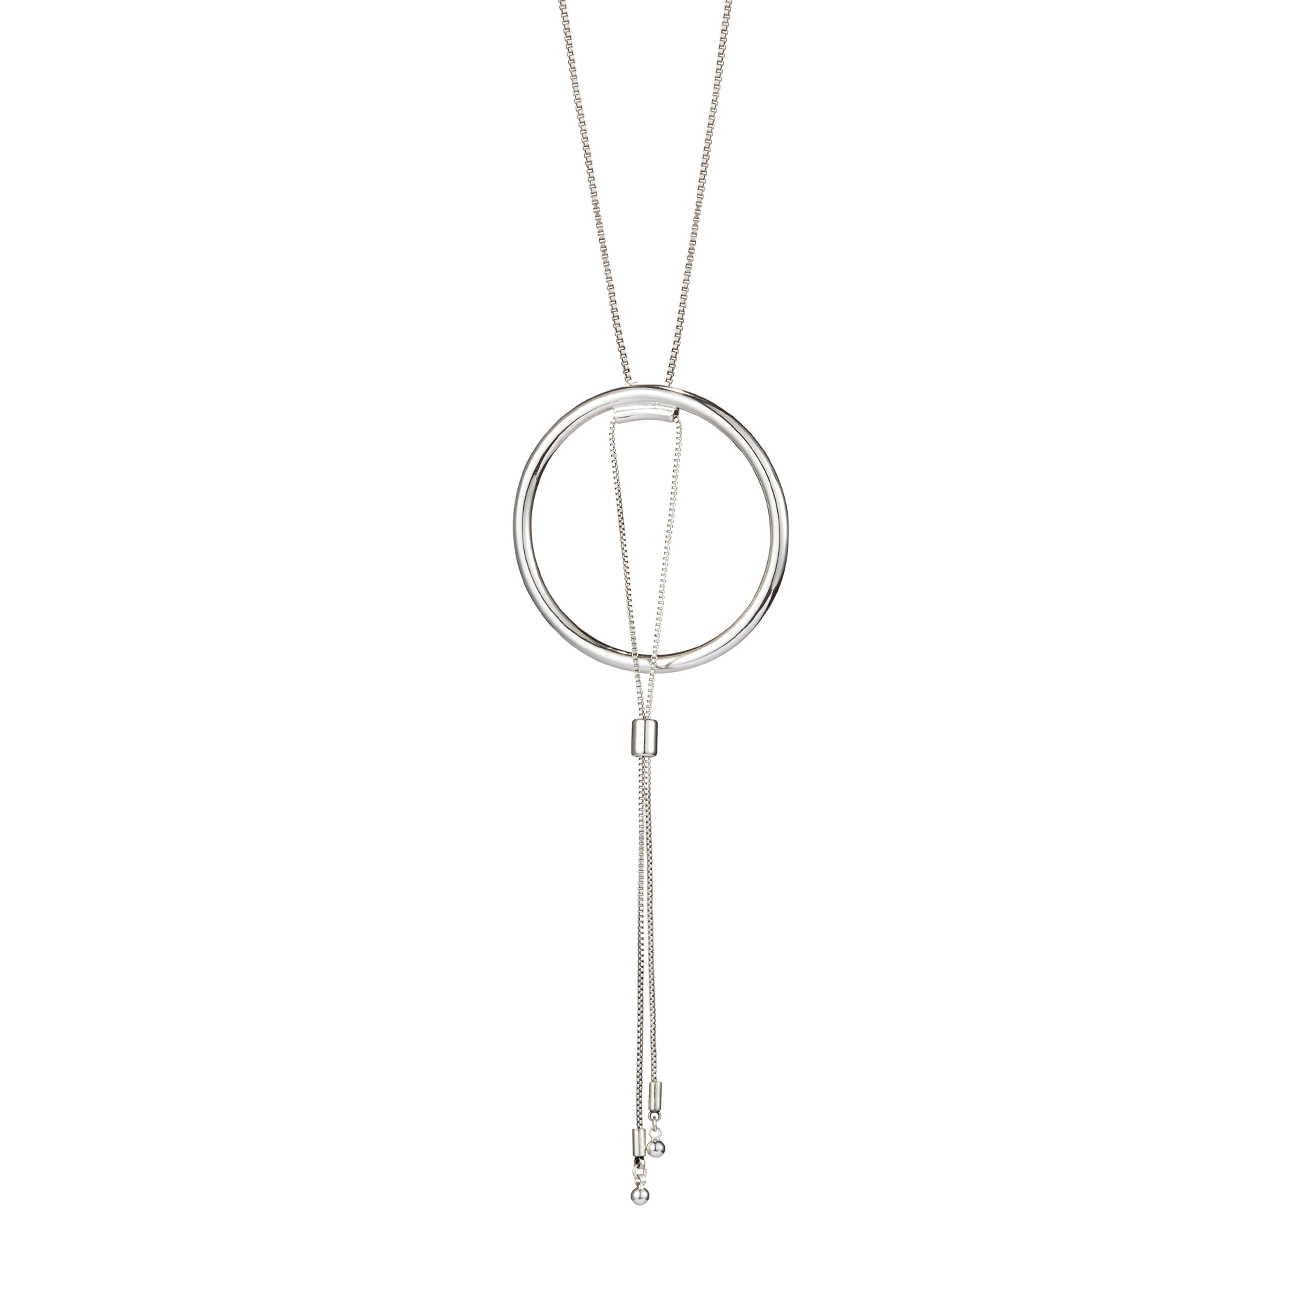 Silver adjustable Sadie Pendant necklace by Jenny Bird.